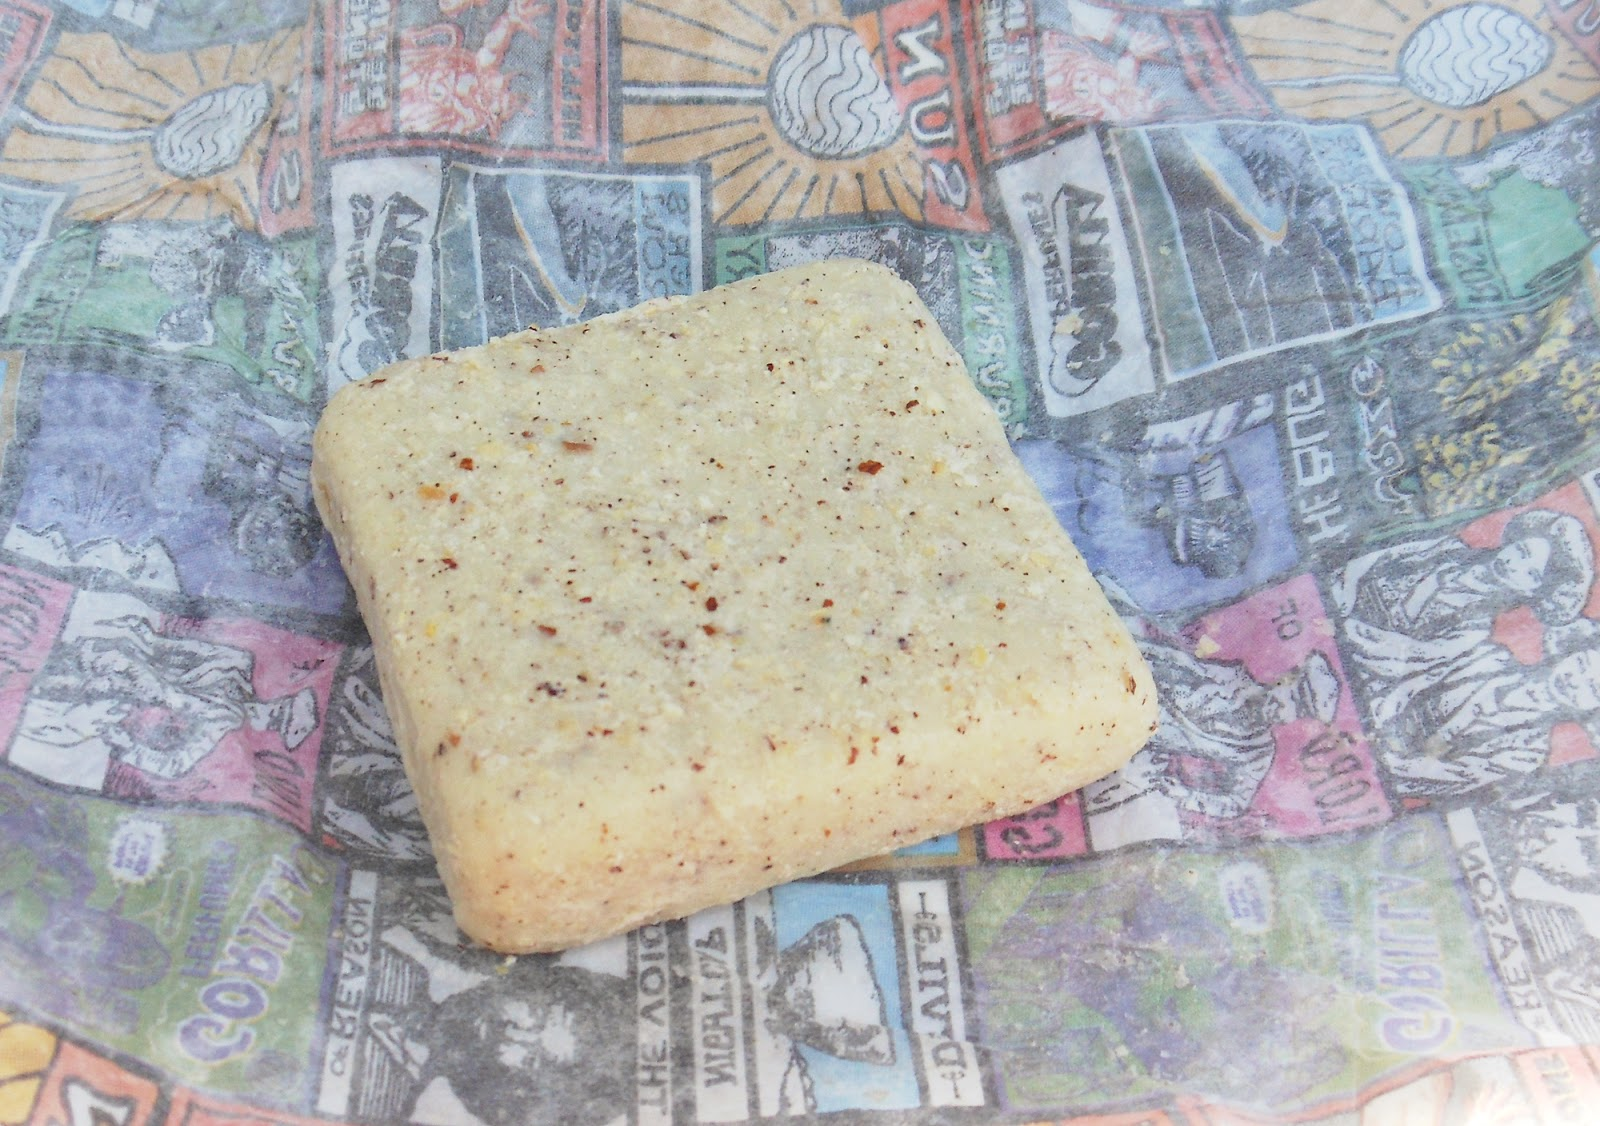 LUSH Haul: Solid shampoo, Herbalism and more....